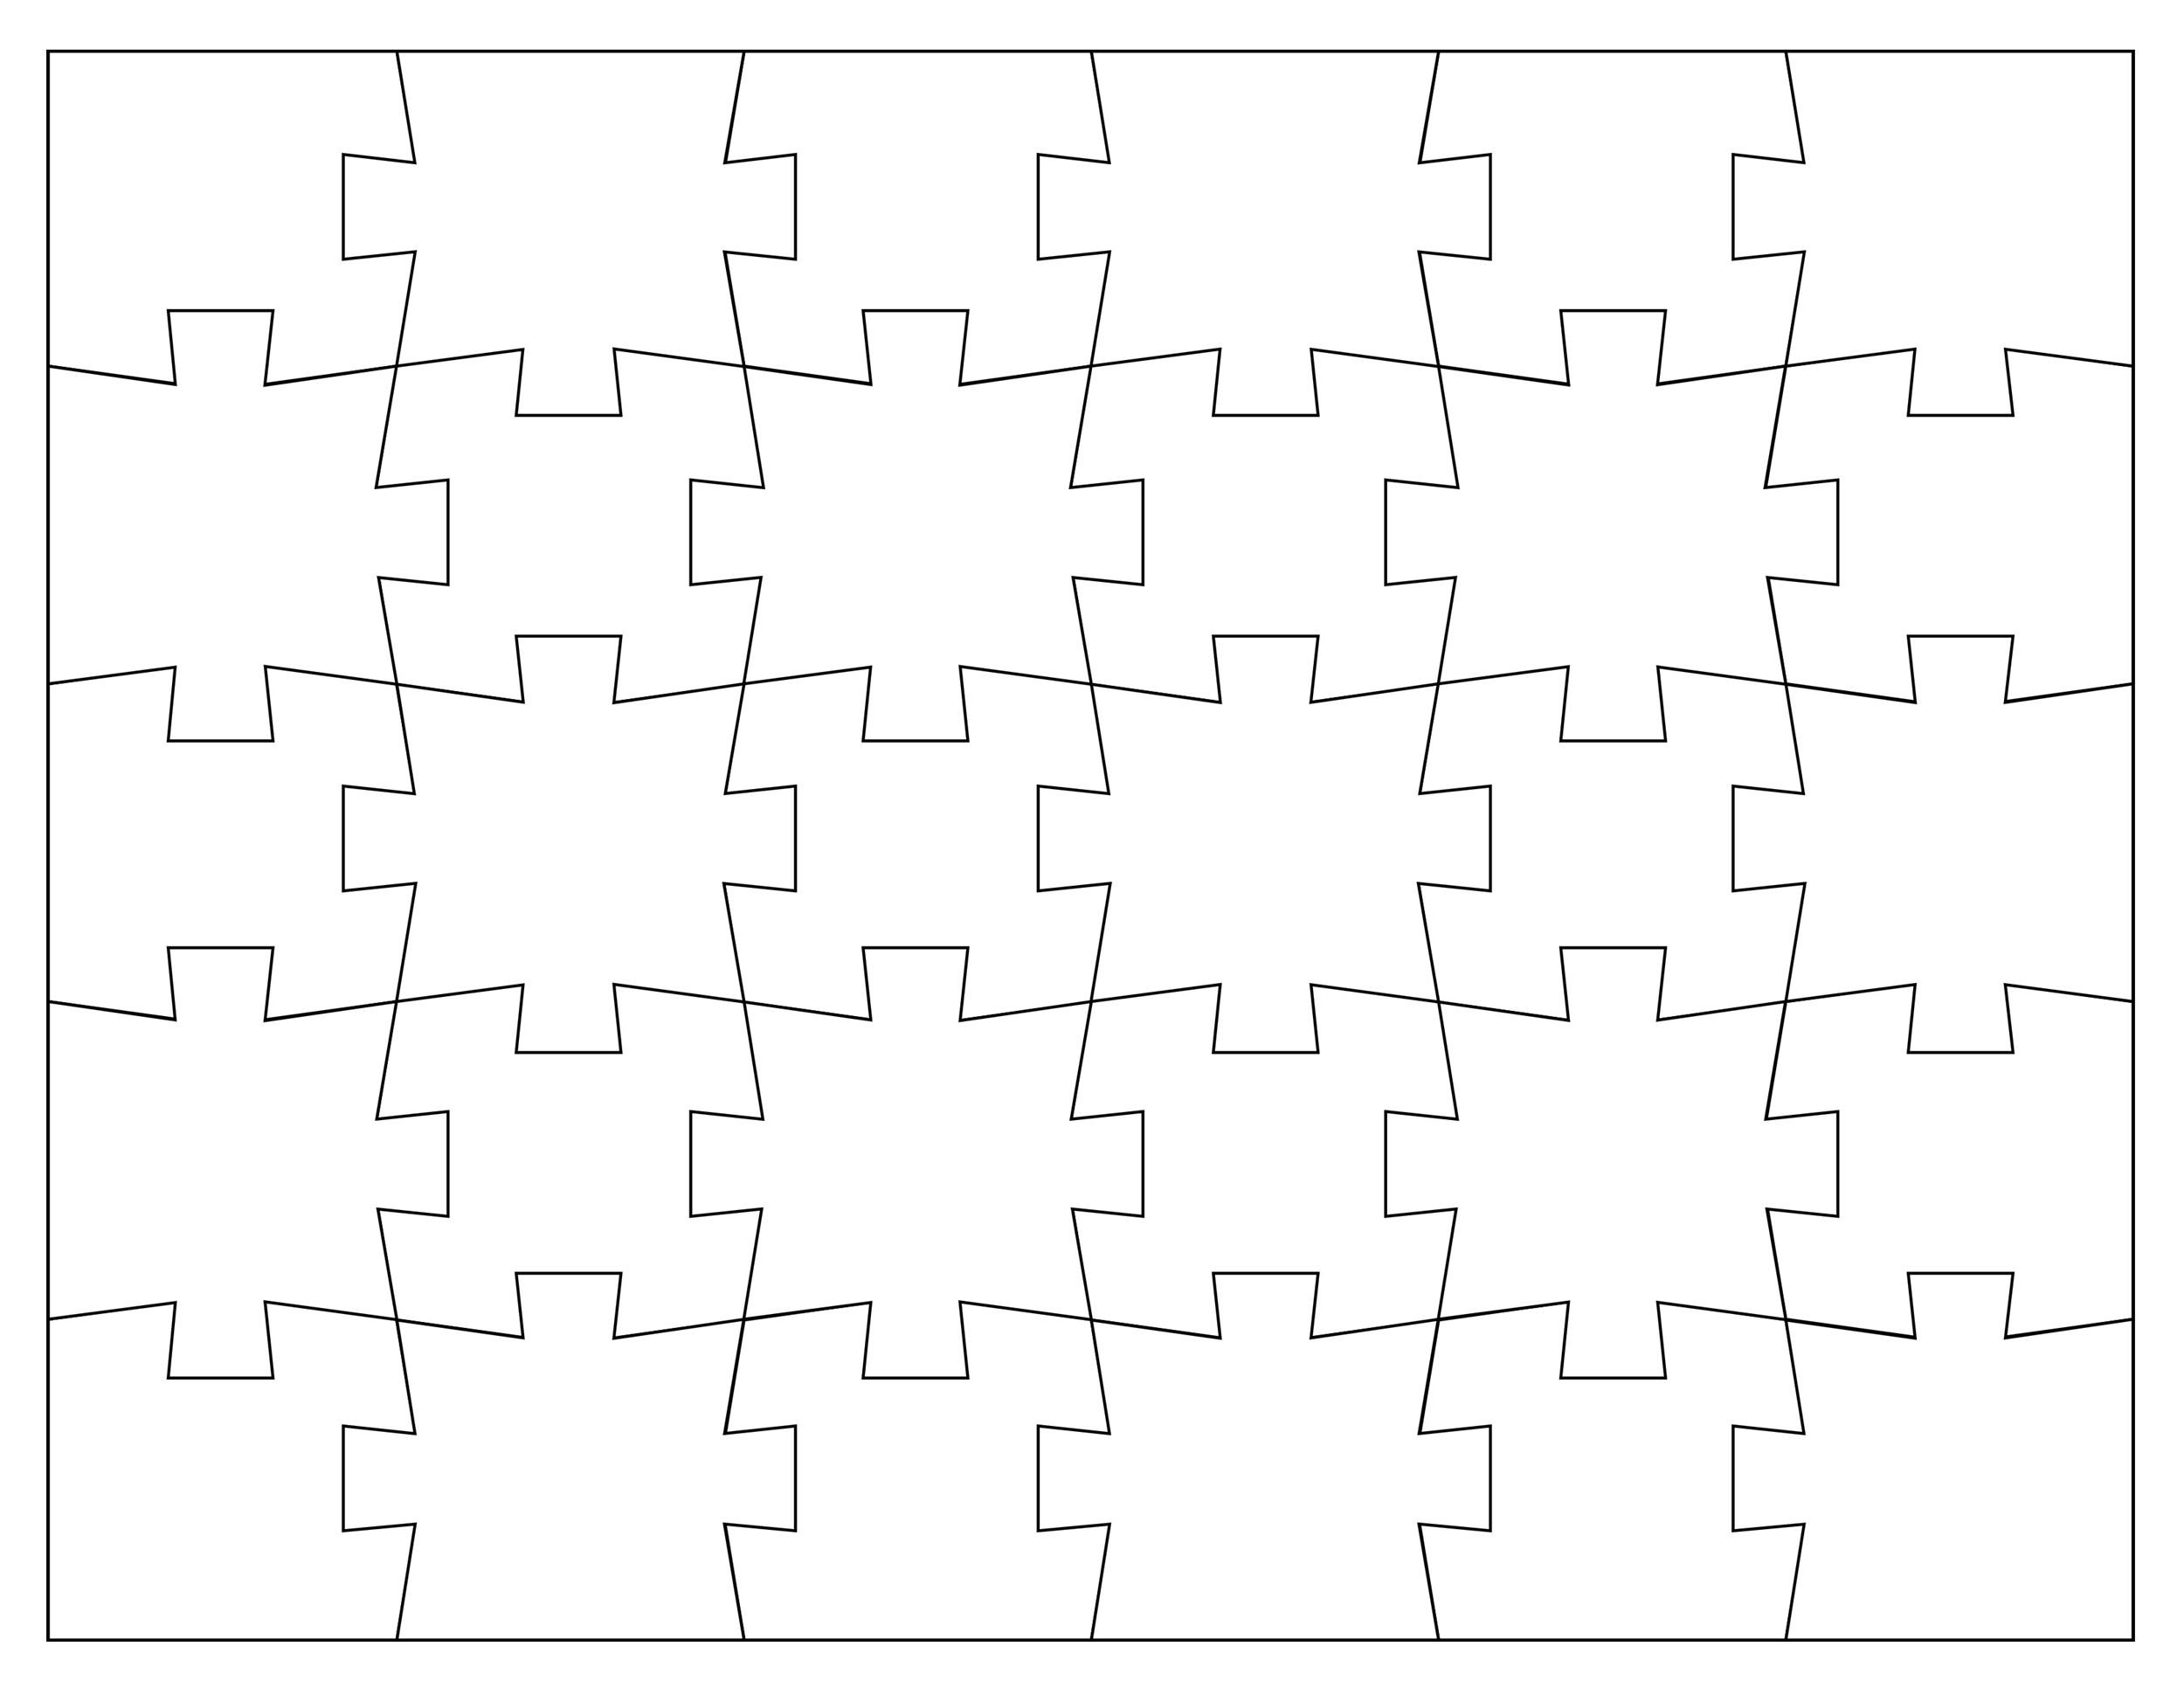 picture regarding Printable Blank Puzzle referred to as 19 Printable Puzzle Piece Templates ᐅ Template Lab